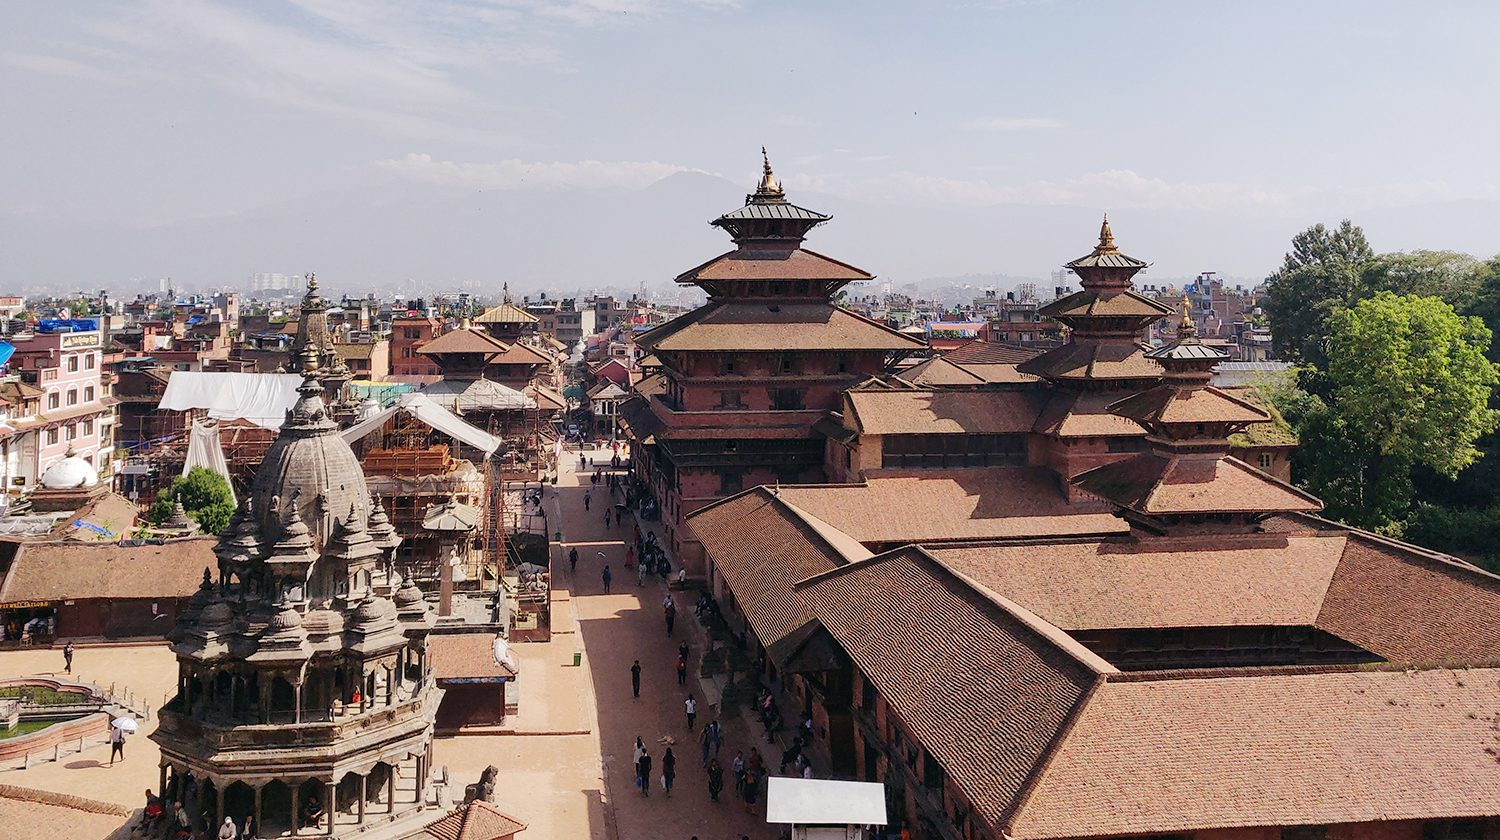 Patan Durbar Square, Photo by Bhupi